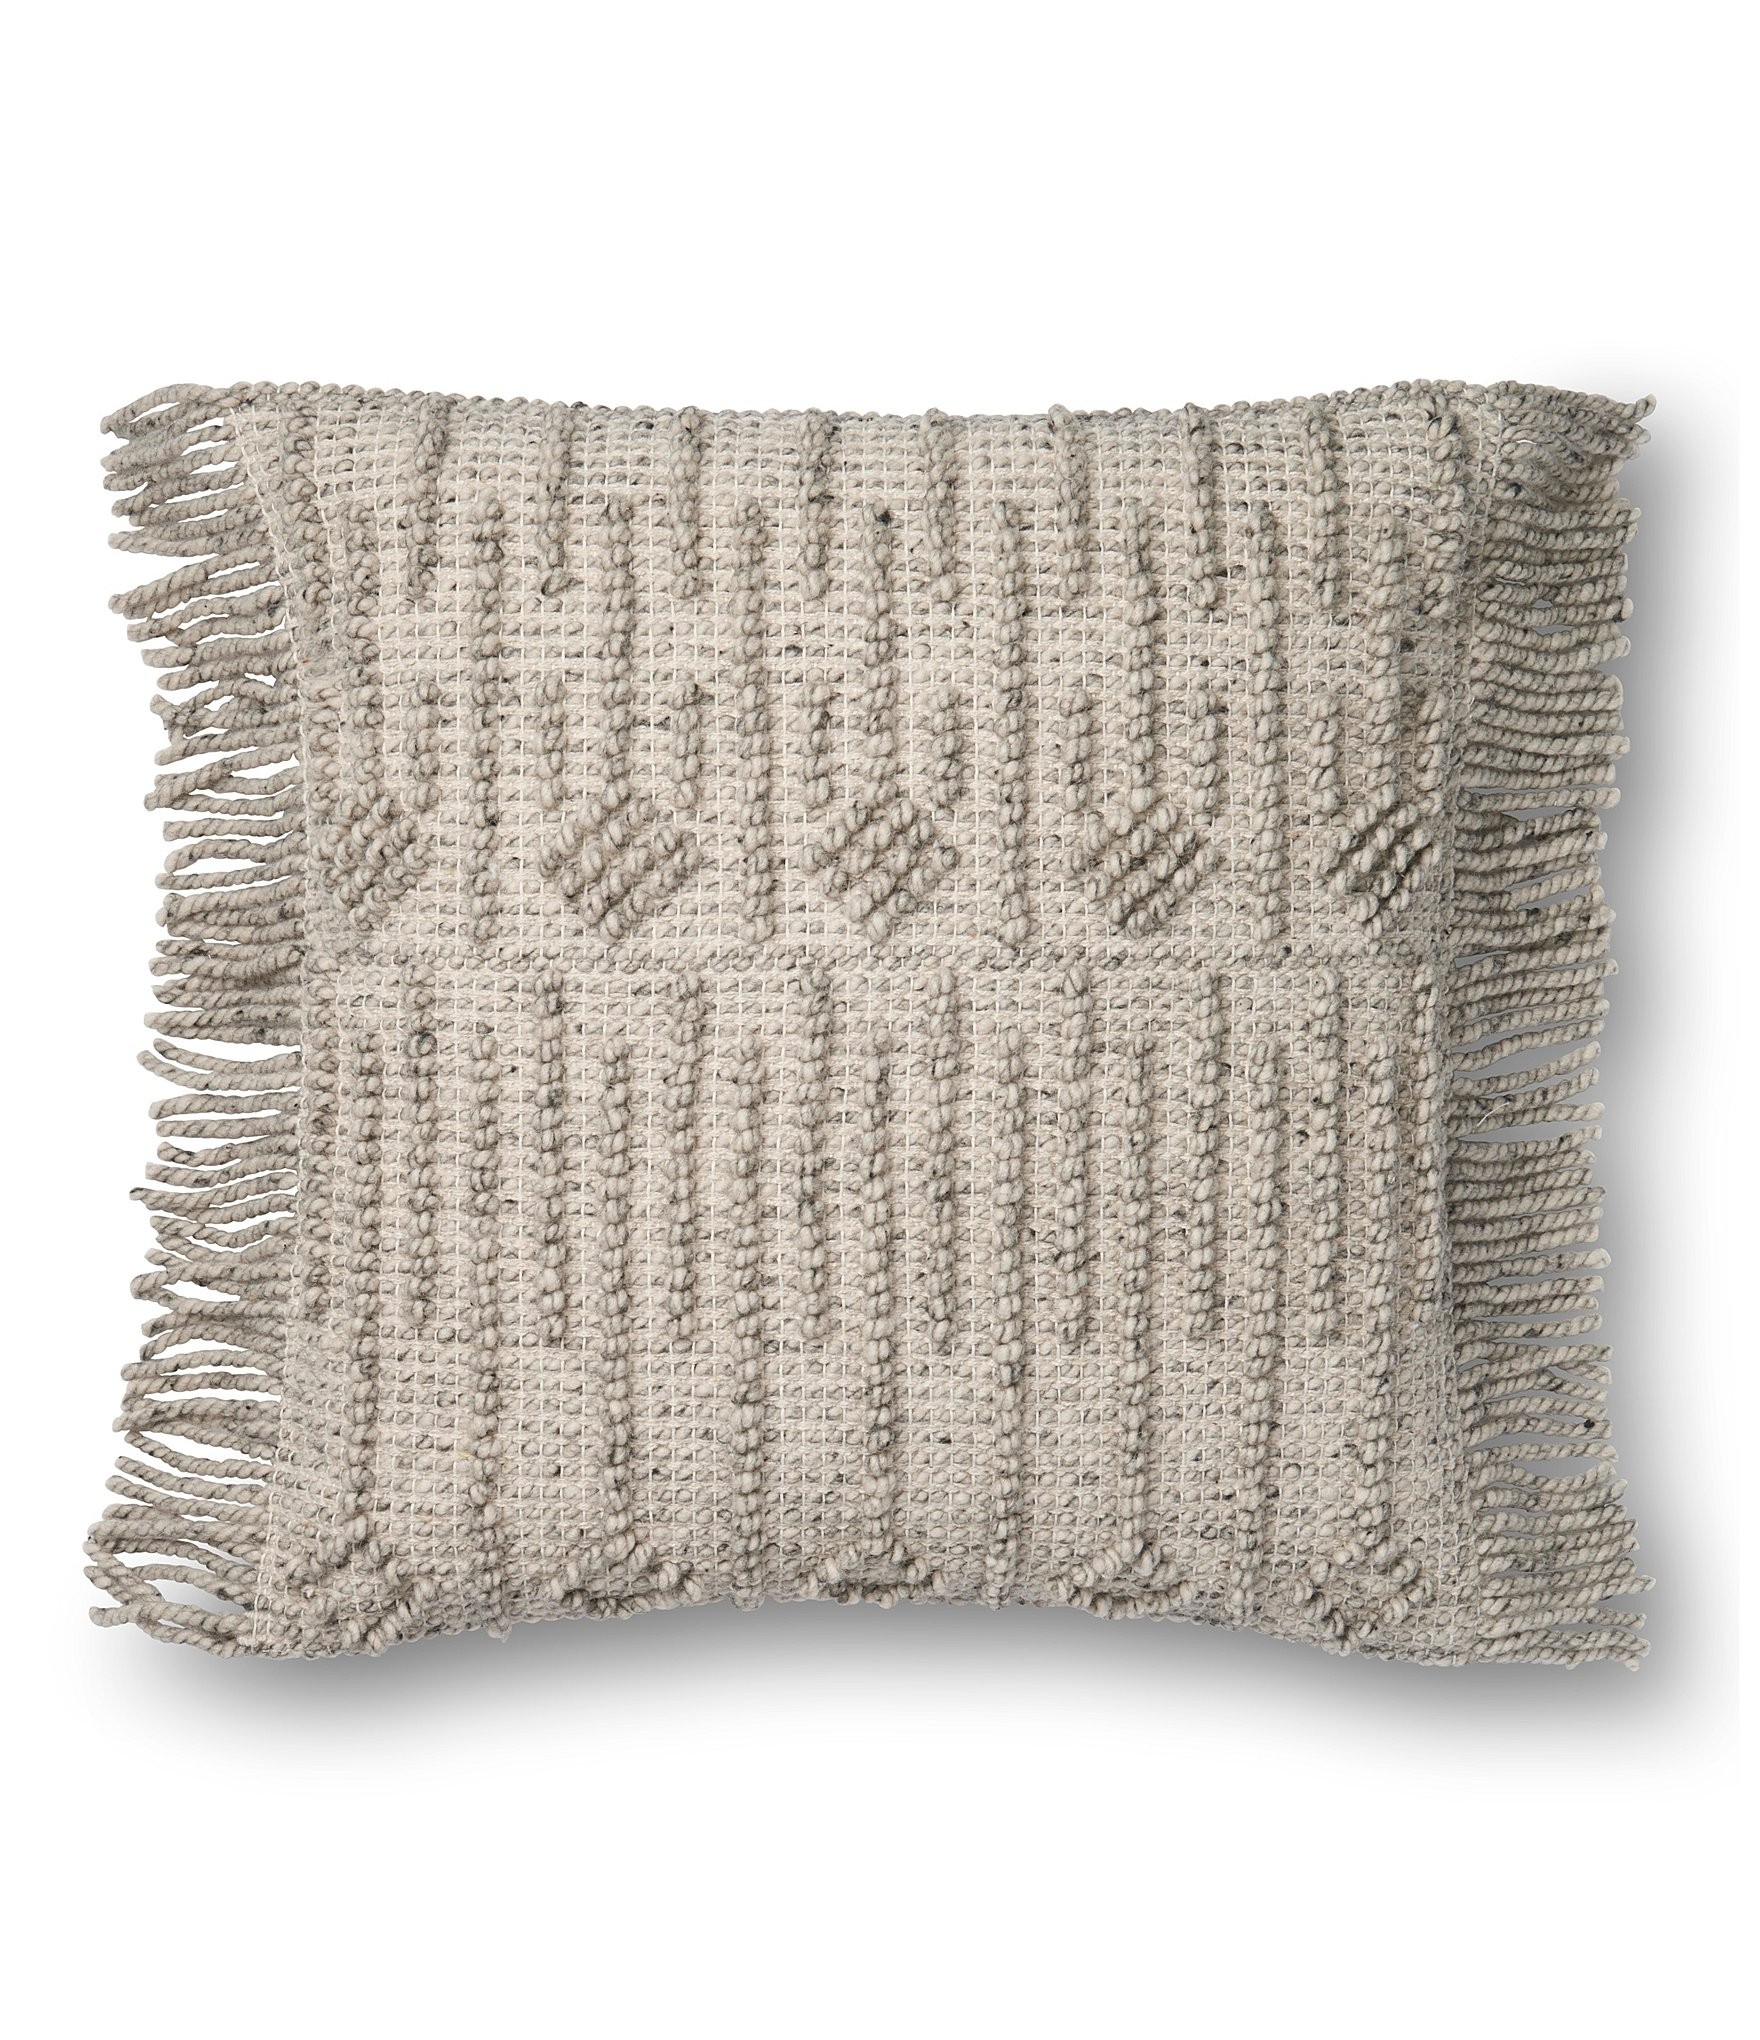 Inexpensive Decorative Pillows